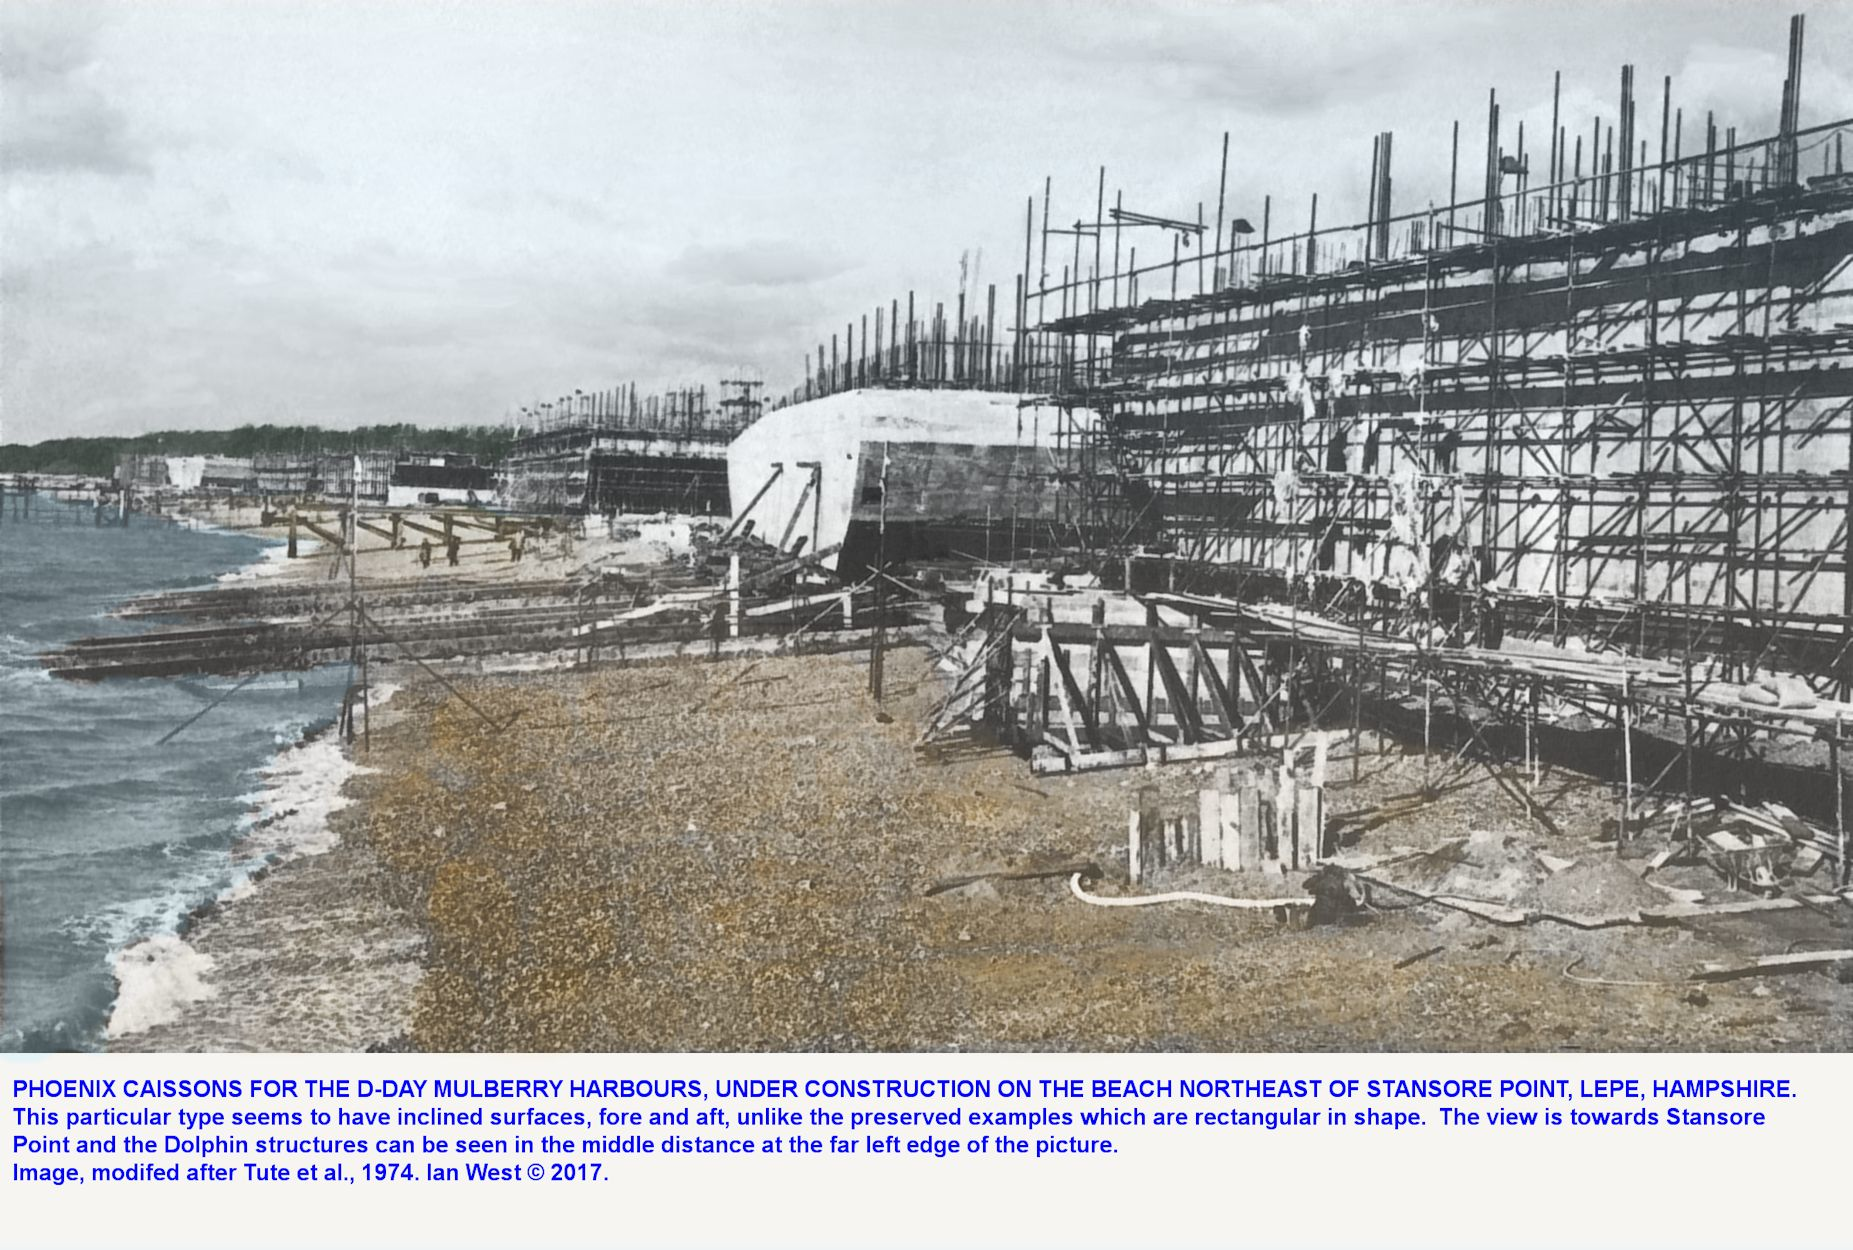 Work in progress on the construction of six caissons for D-Day at the beach northeast of Stanshore Point, Lepe, Hampshire in 1944